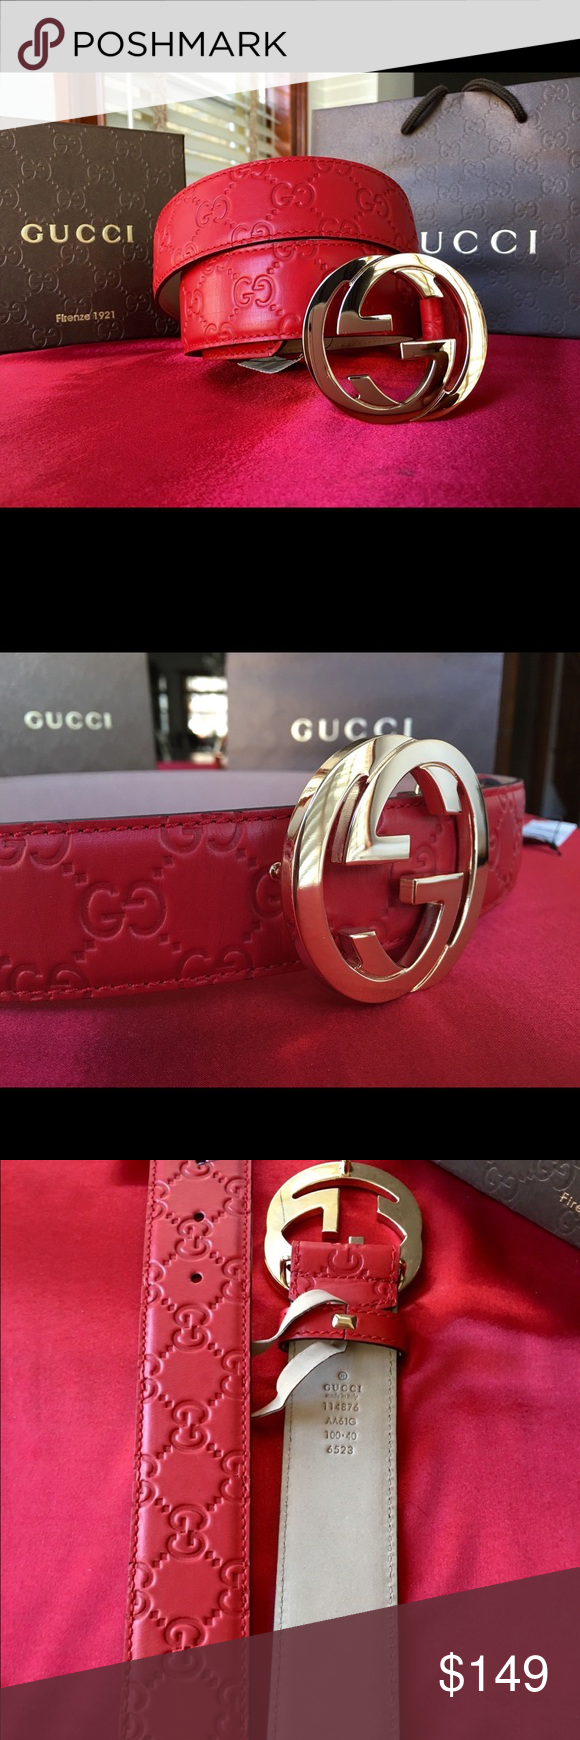 cbdf4781823 🌶 Authentic Men Gucci Belt Red Guccisima Gold GG 🌶!!!! HOT ITEM ...